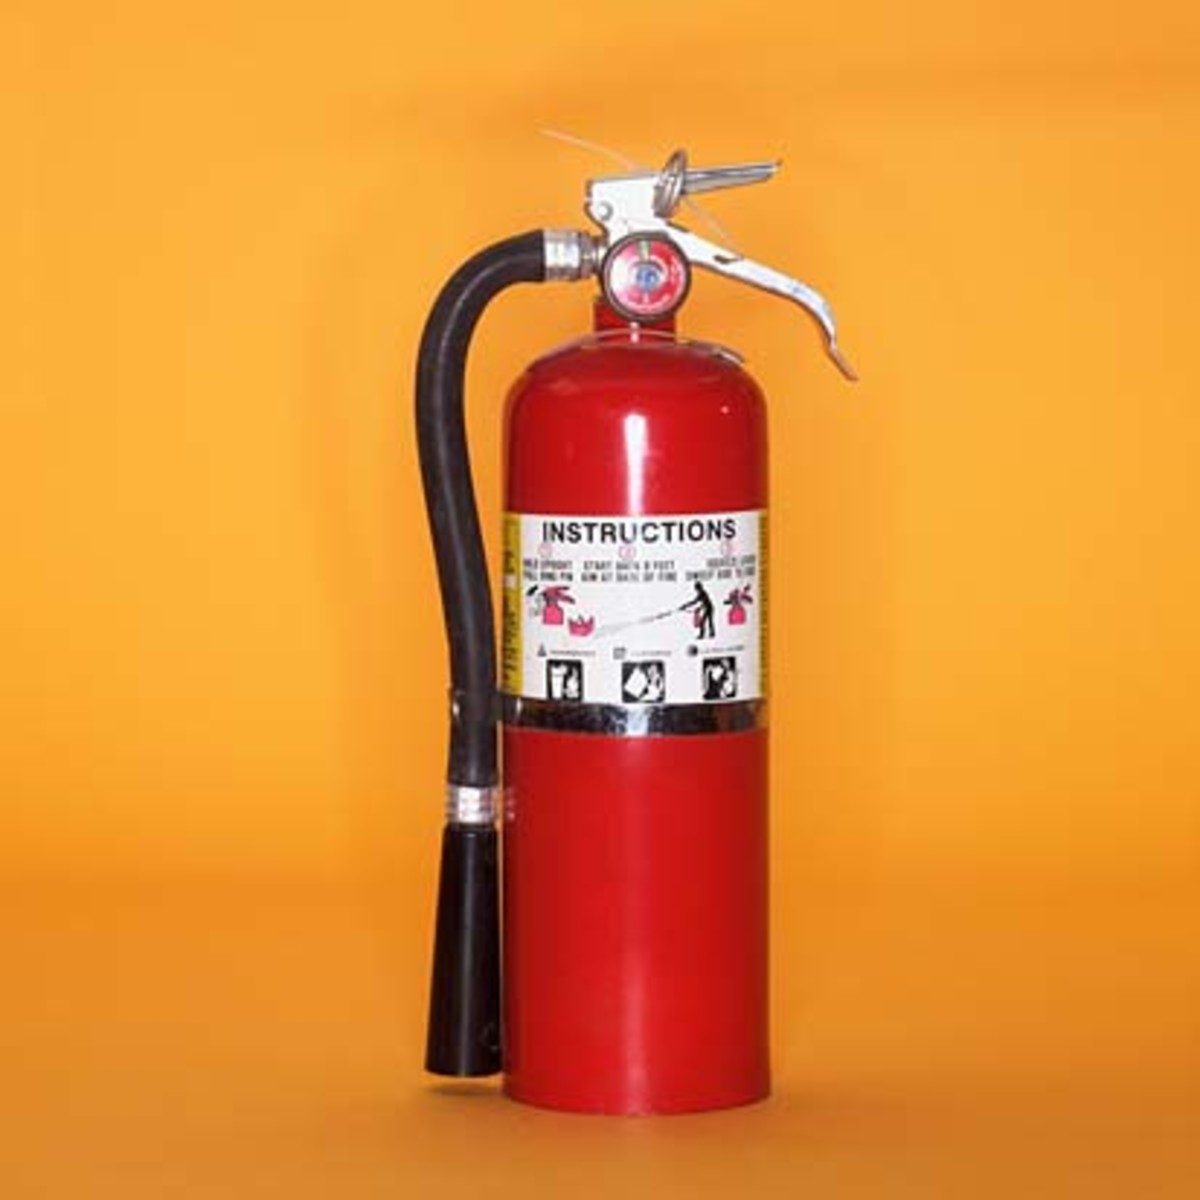 Keep fire extinguisher on hand to avoid and stop fire-related accidents due to leaking gas cylinders.